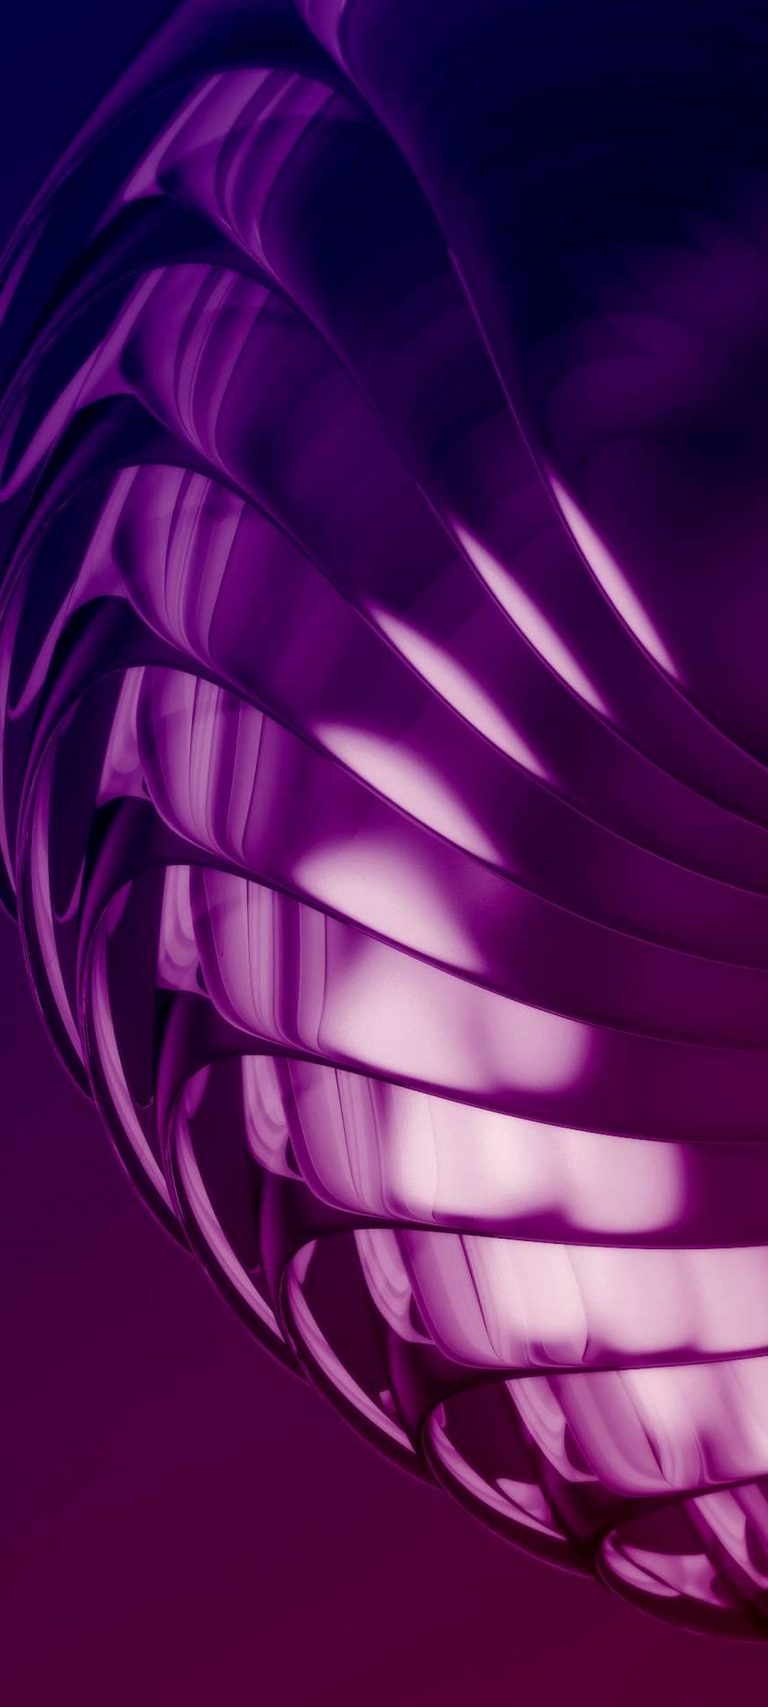 Purple Layers 3D Abstract 1080x2400 768x1707